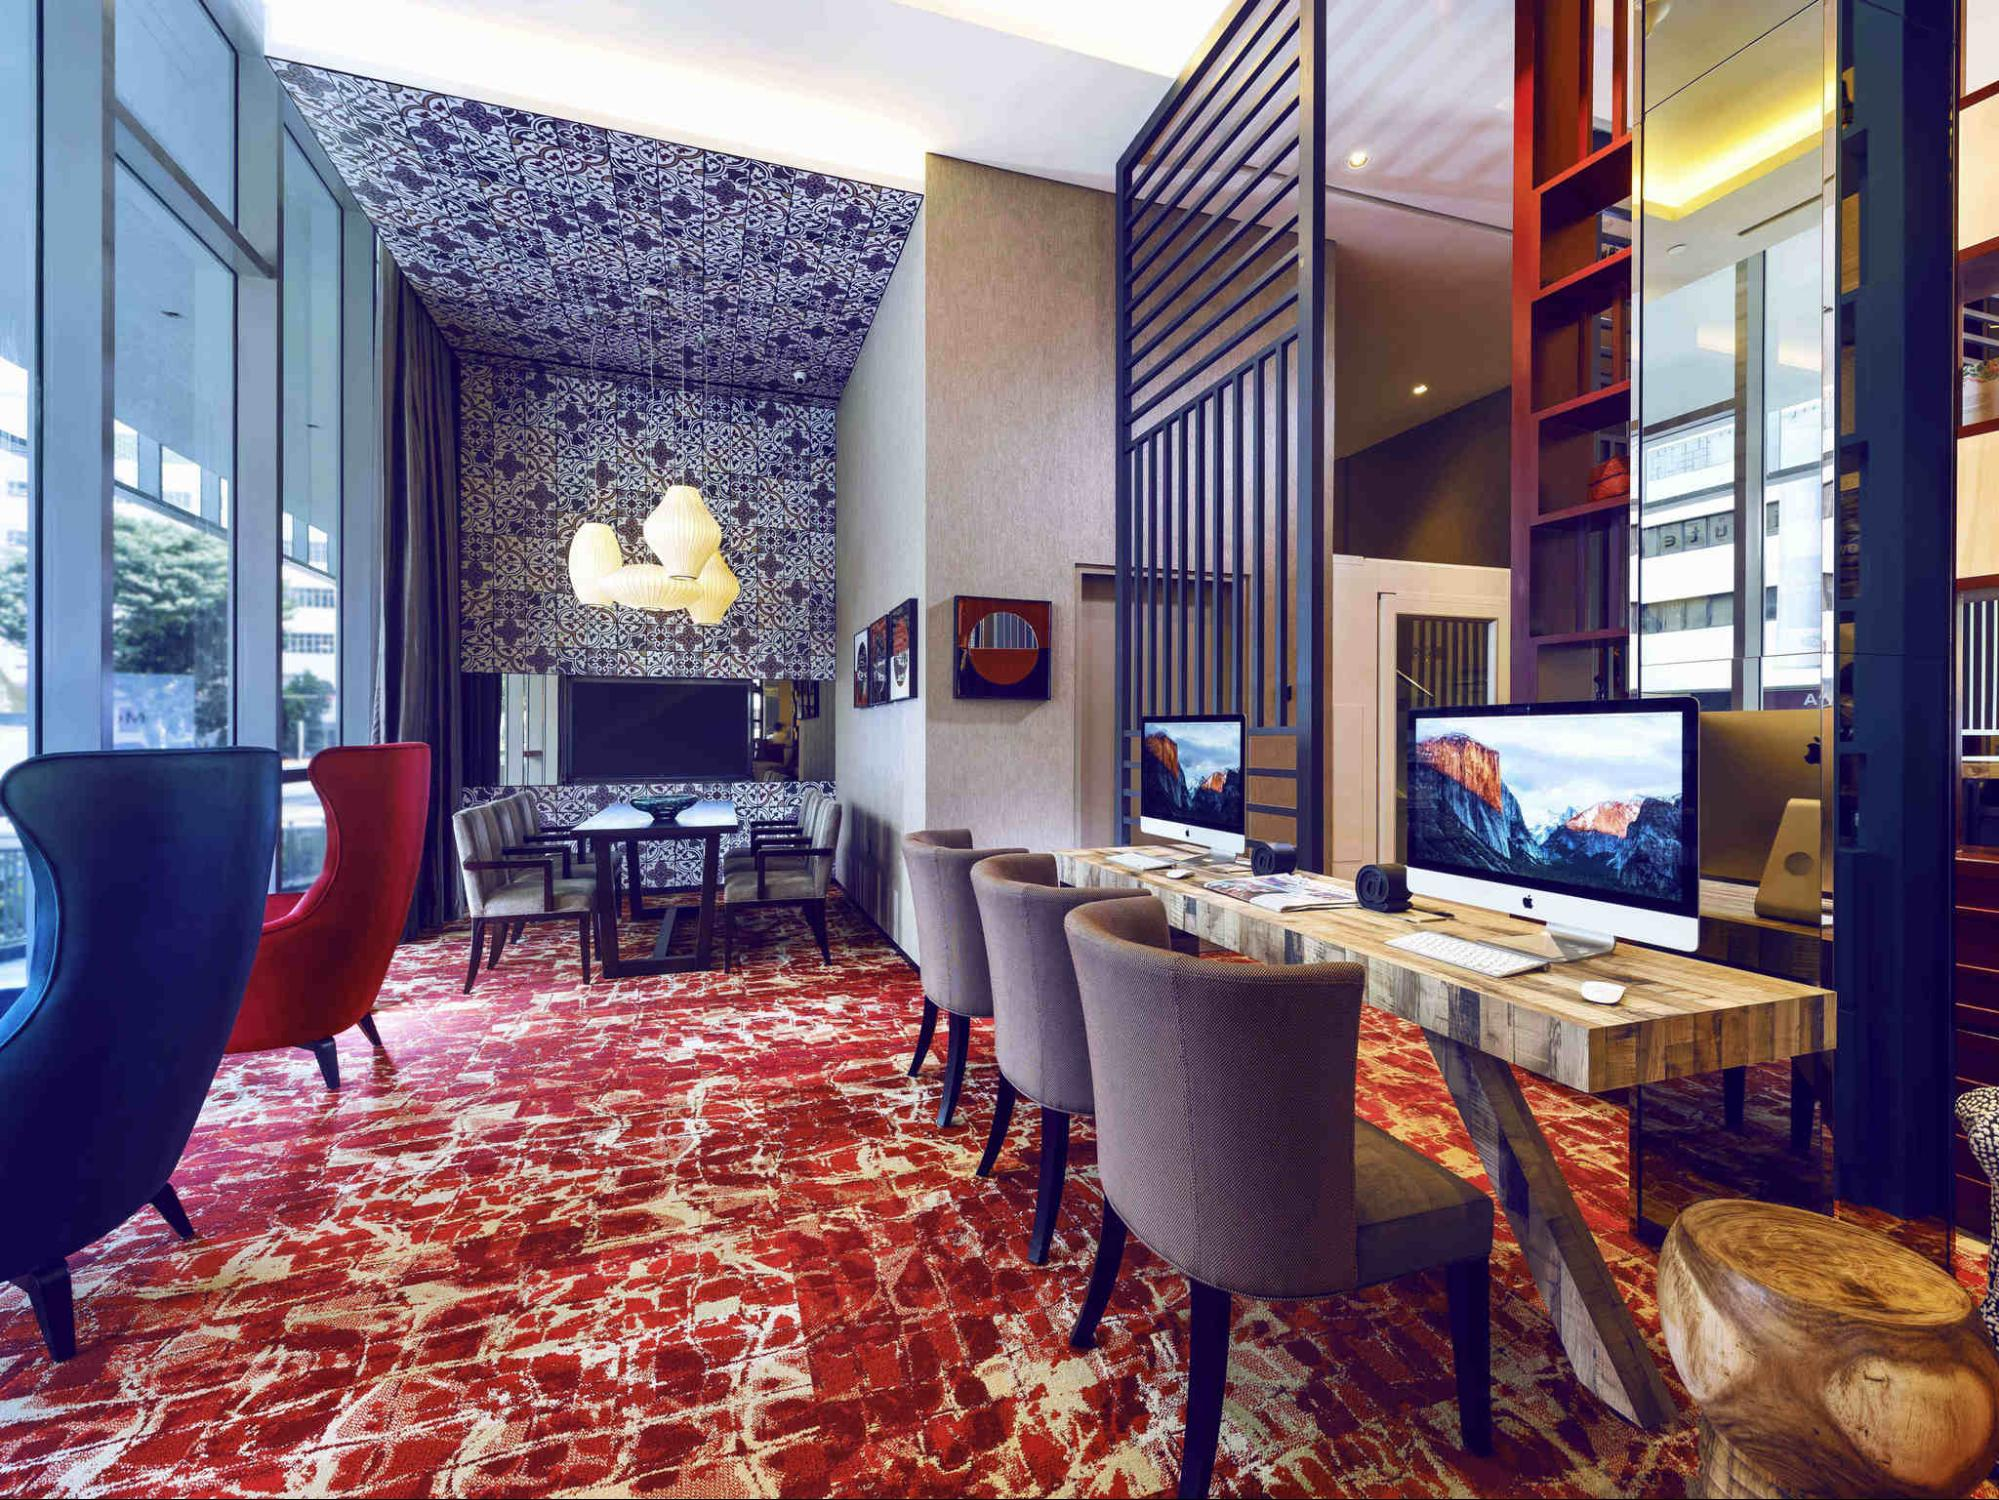 Mercure Singapore Bugis – The Swanky New Loft-Style Hotel that Everyone's Raving About